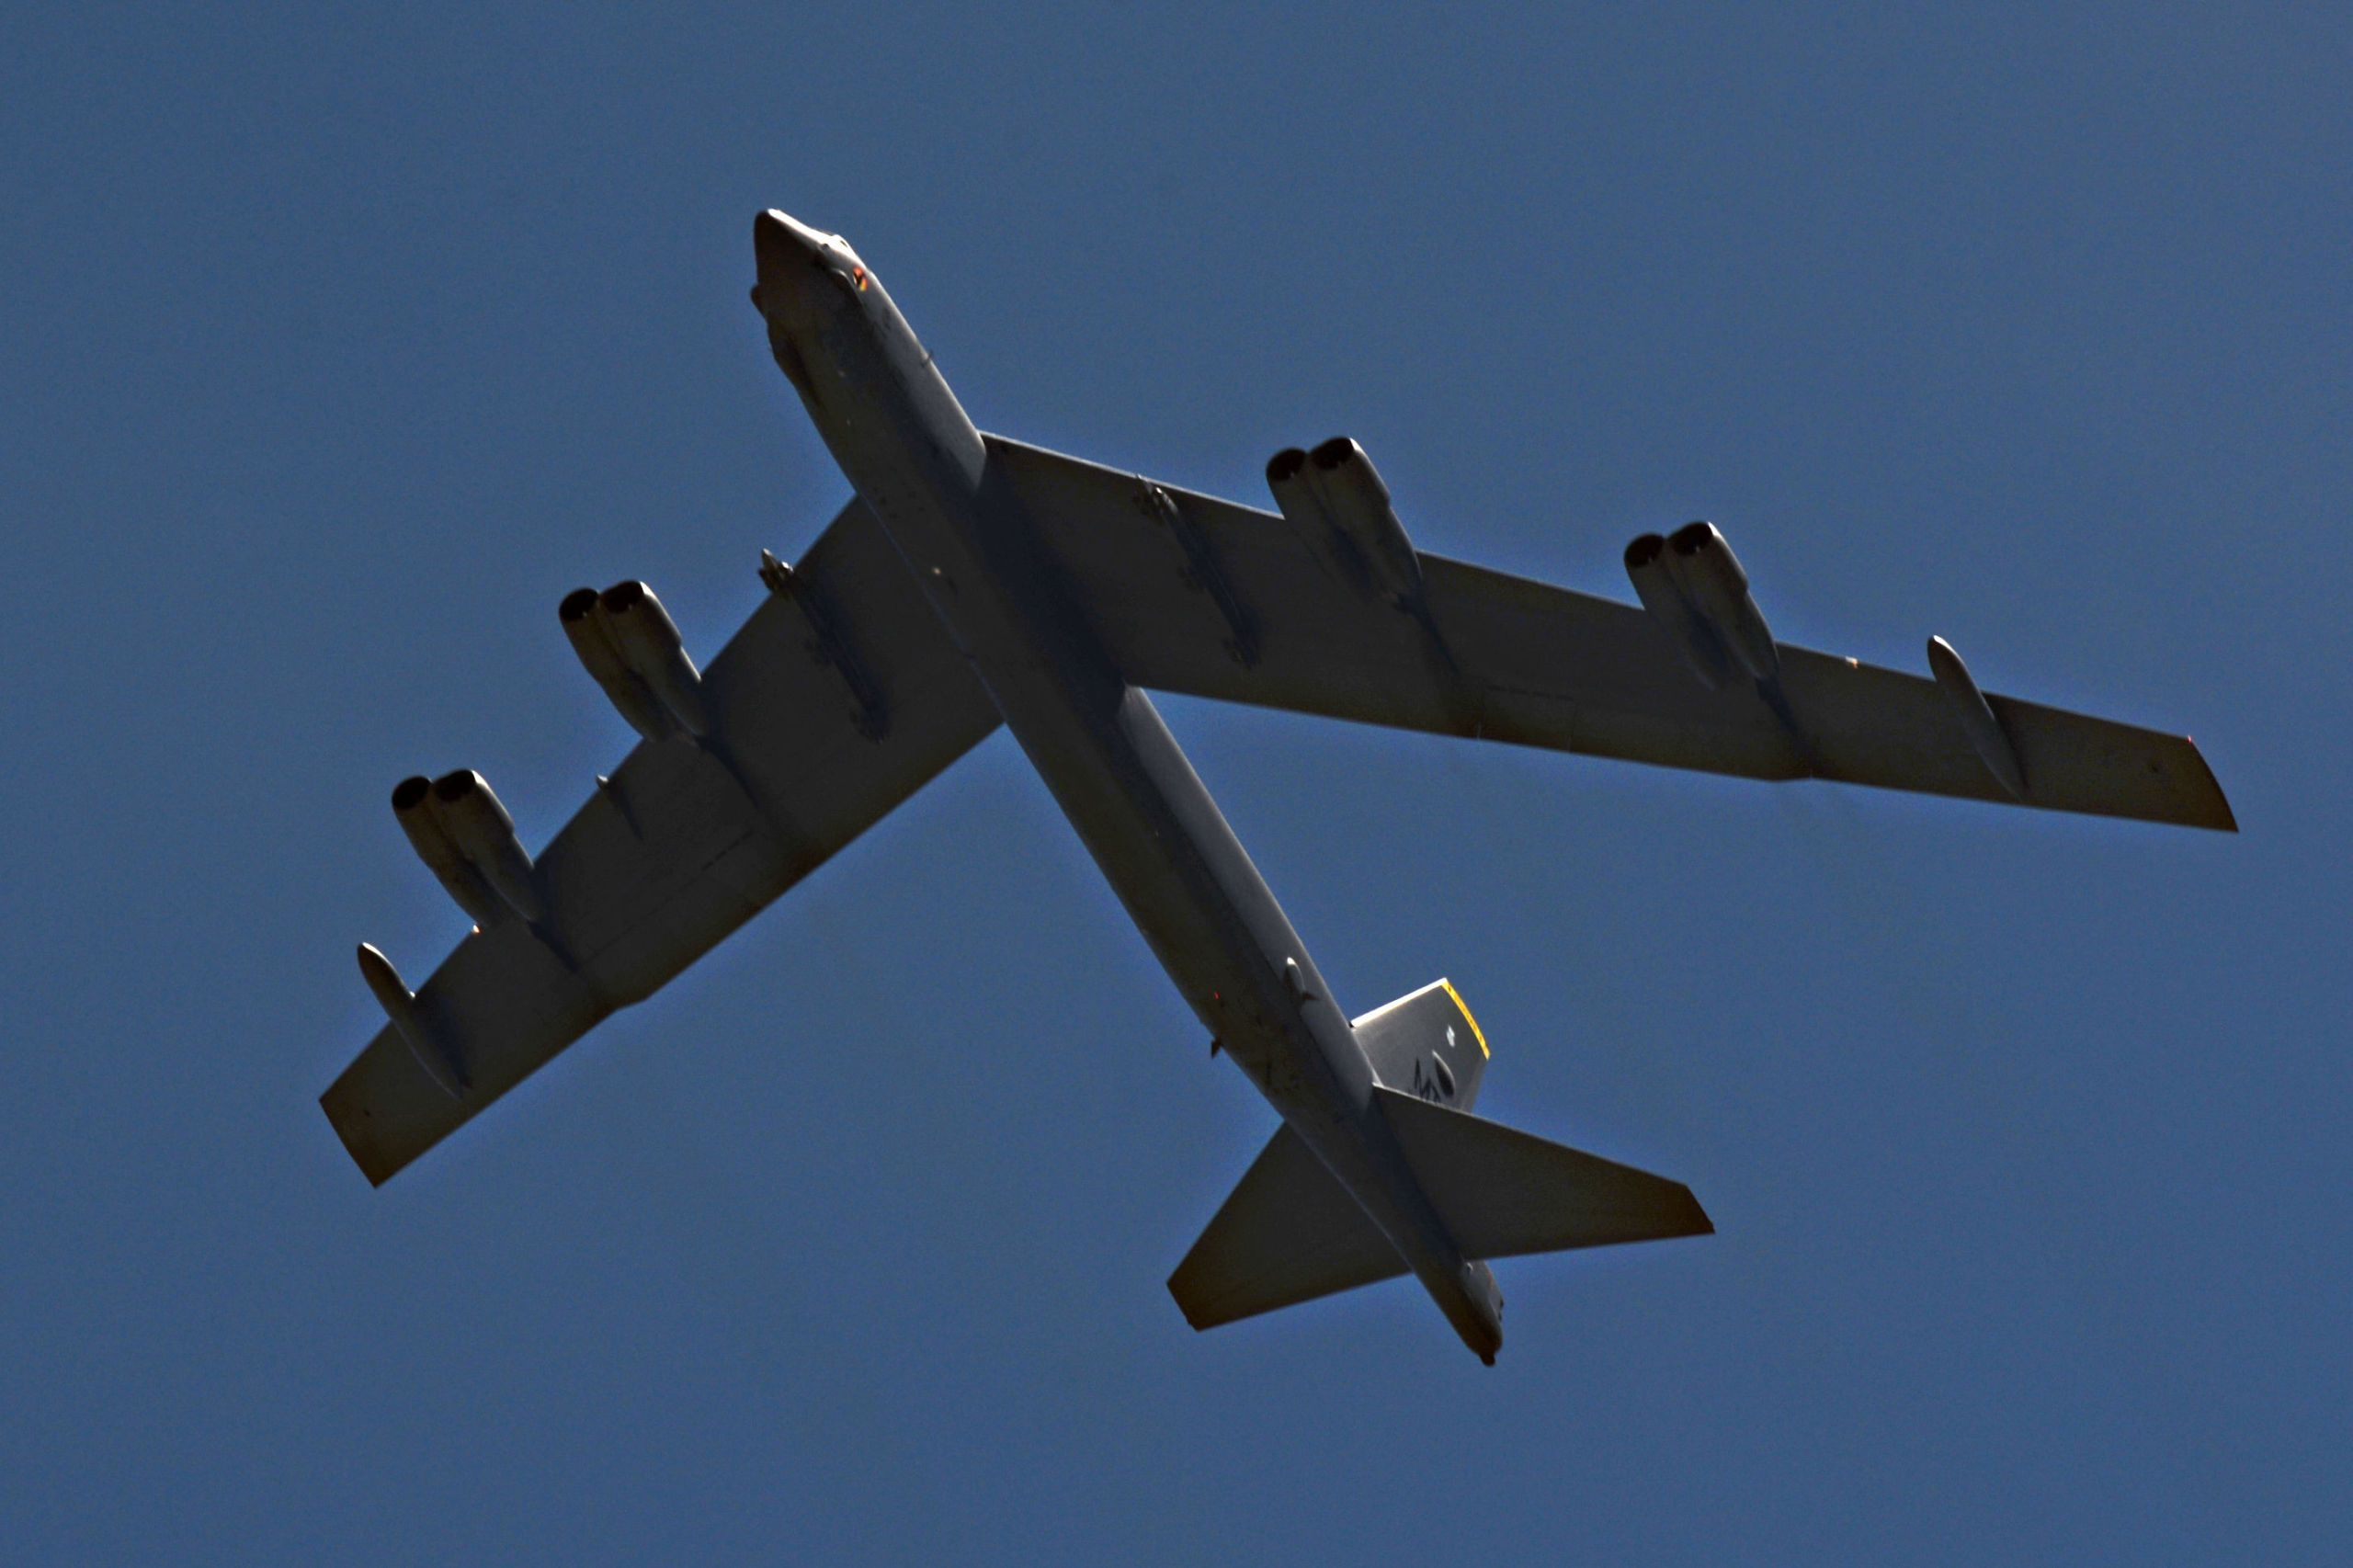 An Entire Engine Fell Off a B-52 Bomber While In Flight